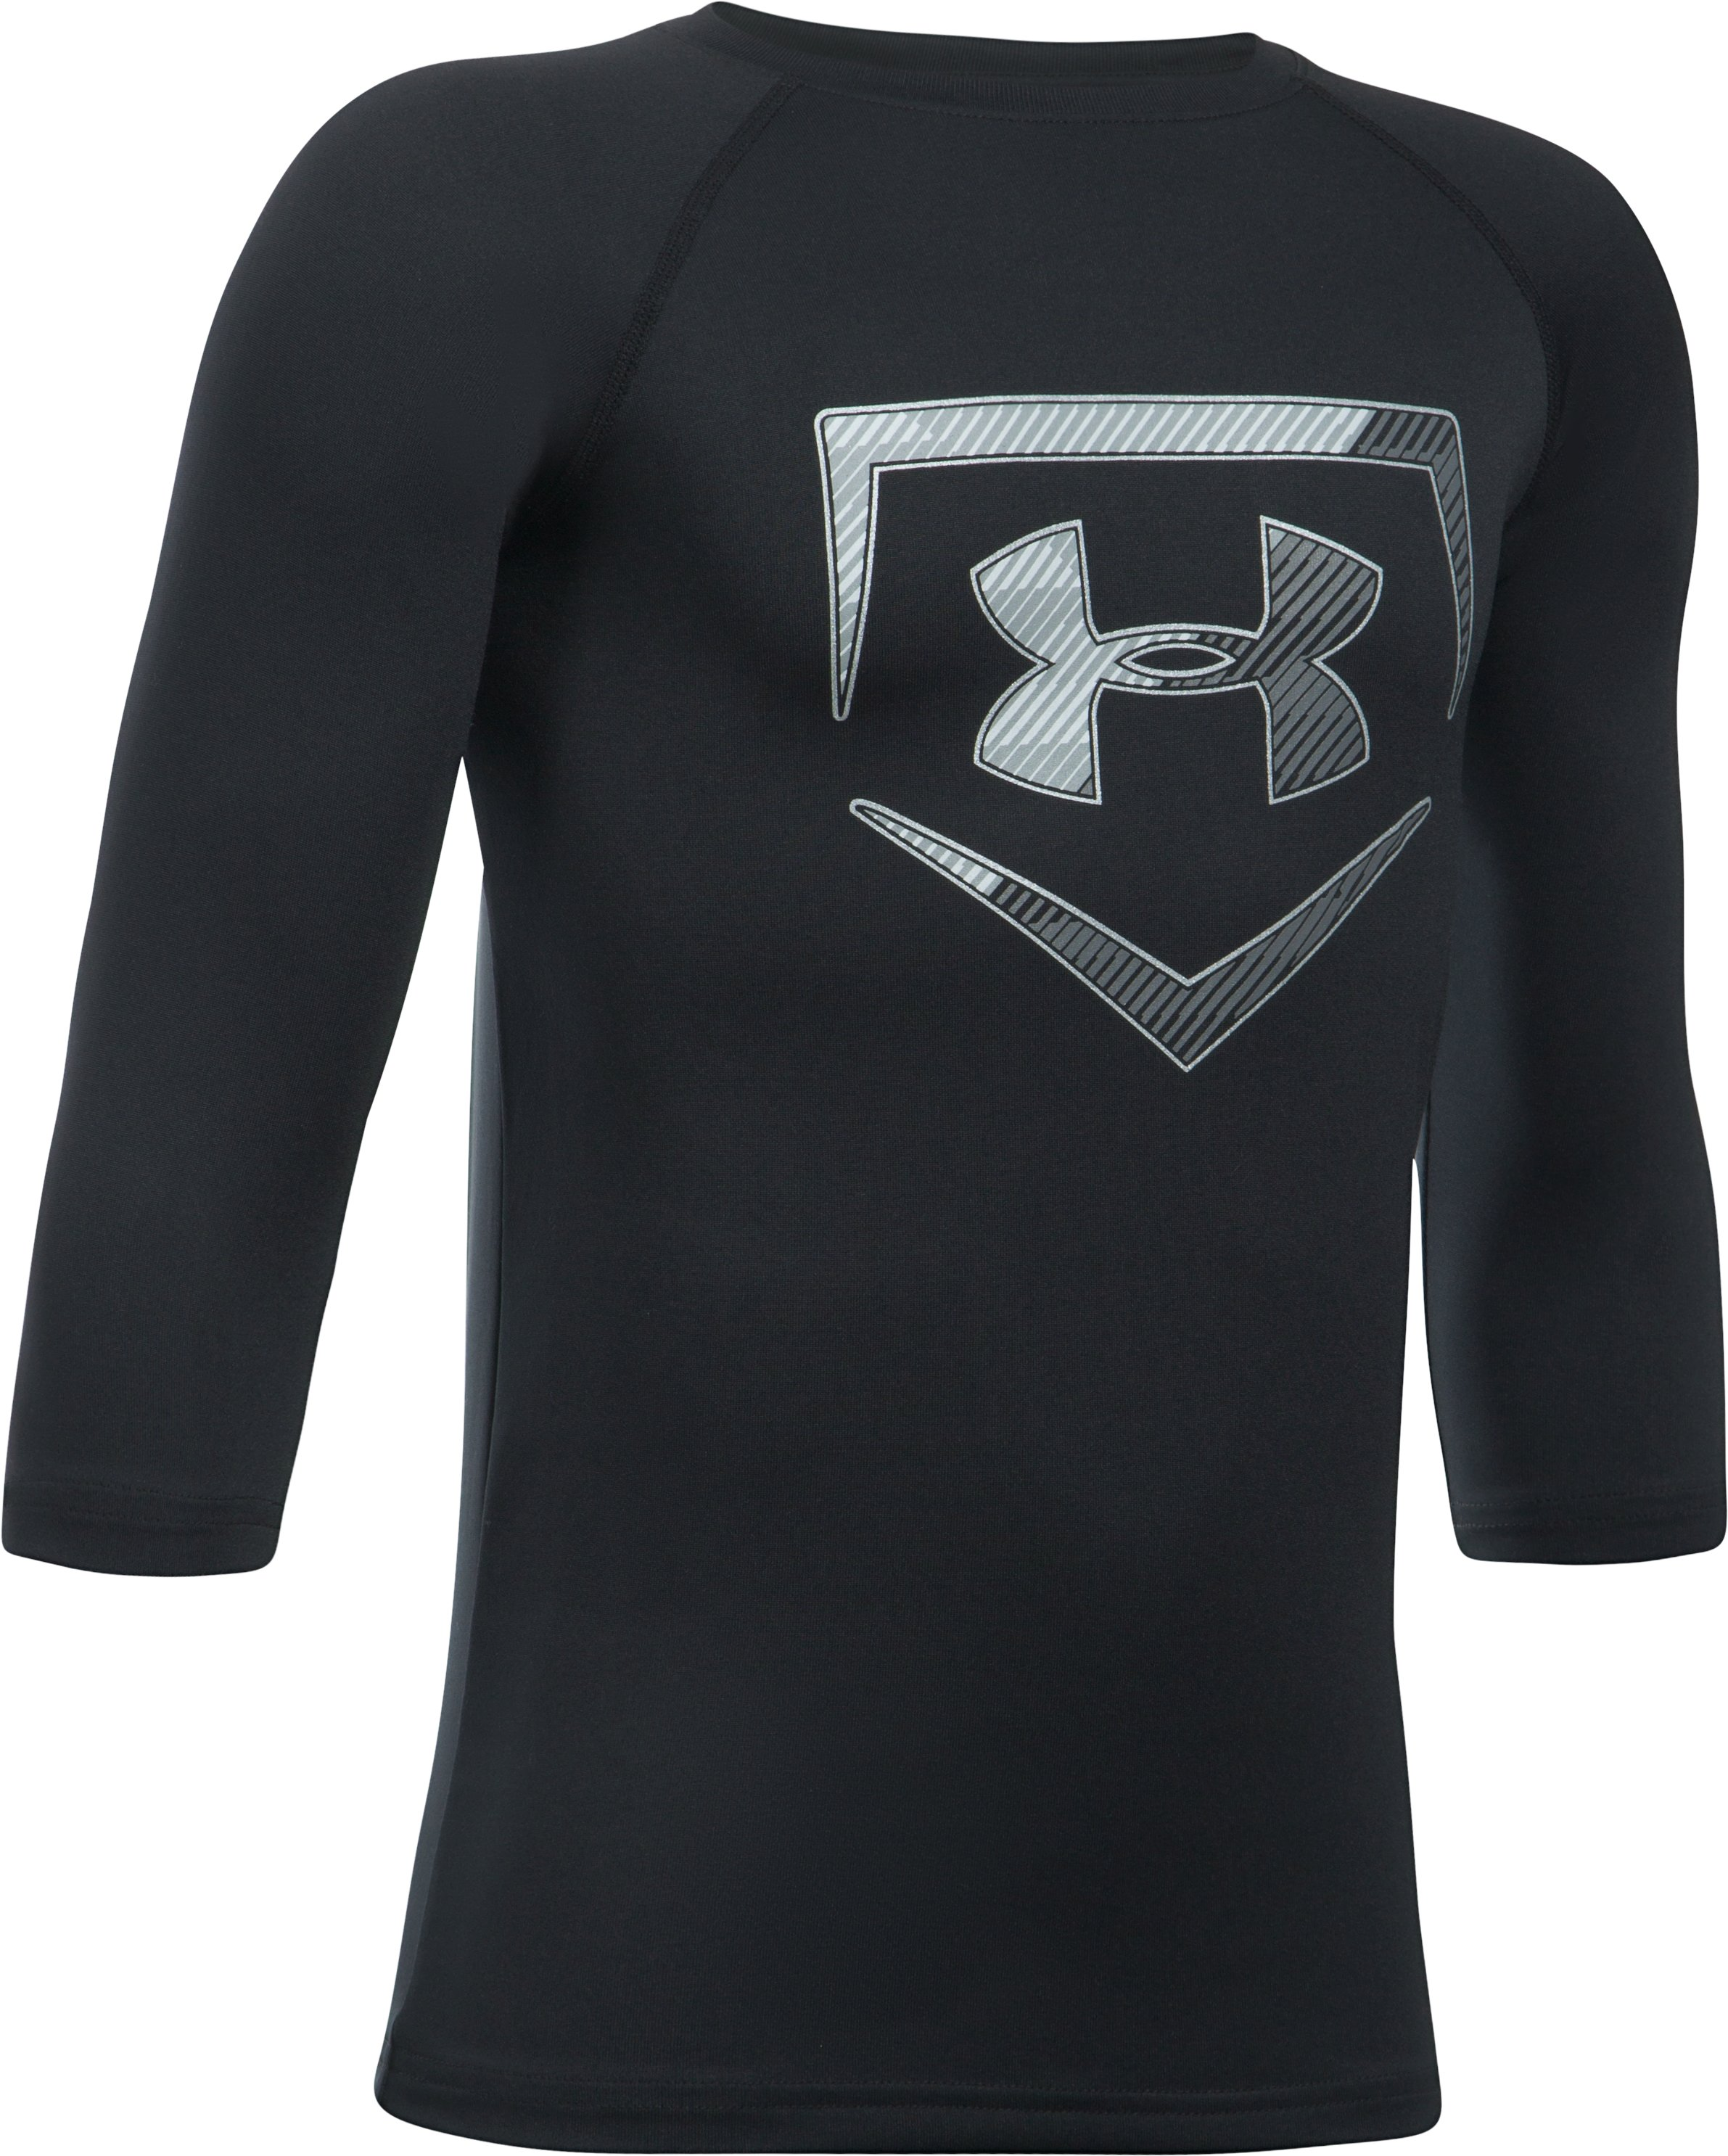 Boys' UA Plate ¾ Sleeve T-Shirt, Black , undefined